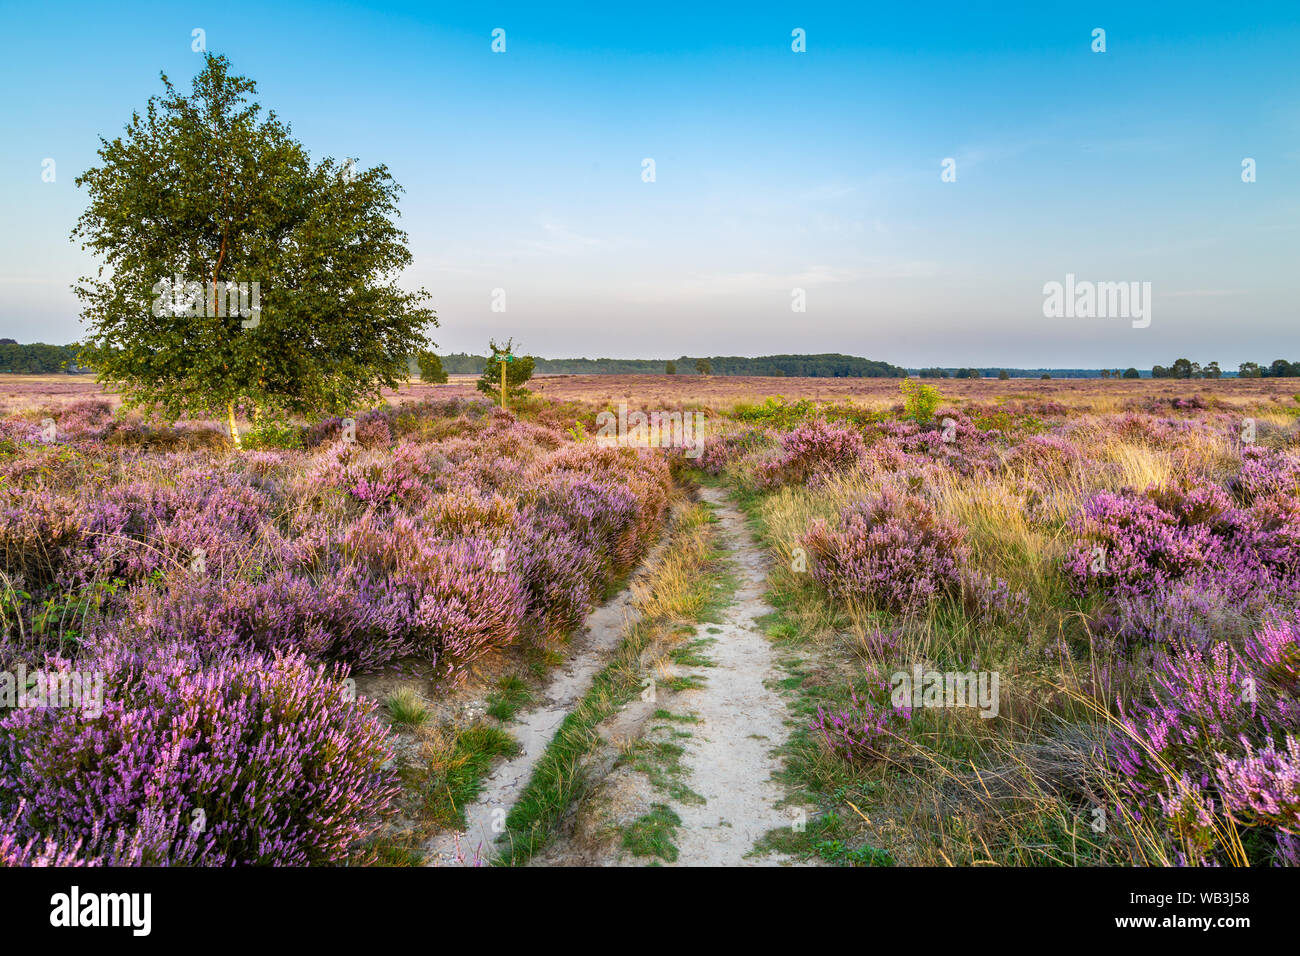 Purple pink heather in bloom Ginkel Heath Ede in the Netherlands. Famous as dropping zone for the soldiers during WOII operation Market Garden Arnhem. Stock Photo